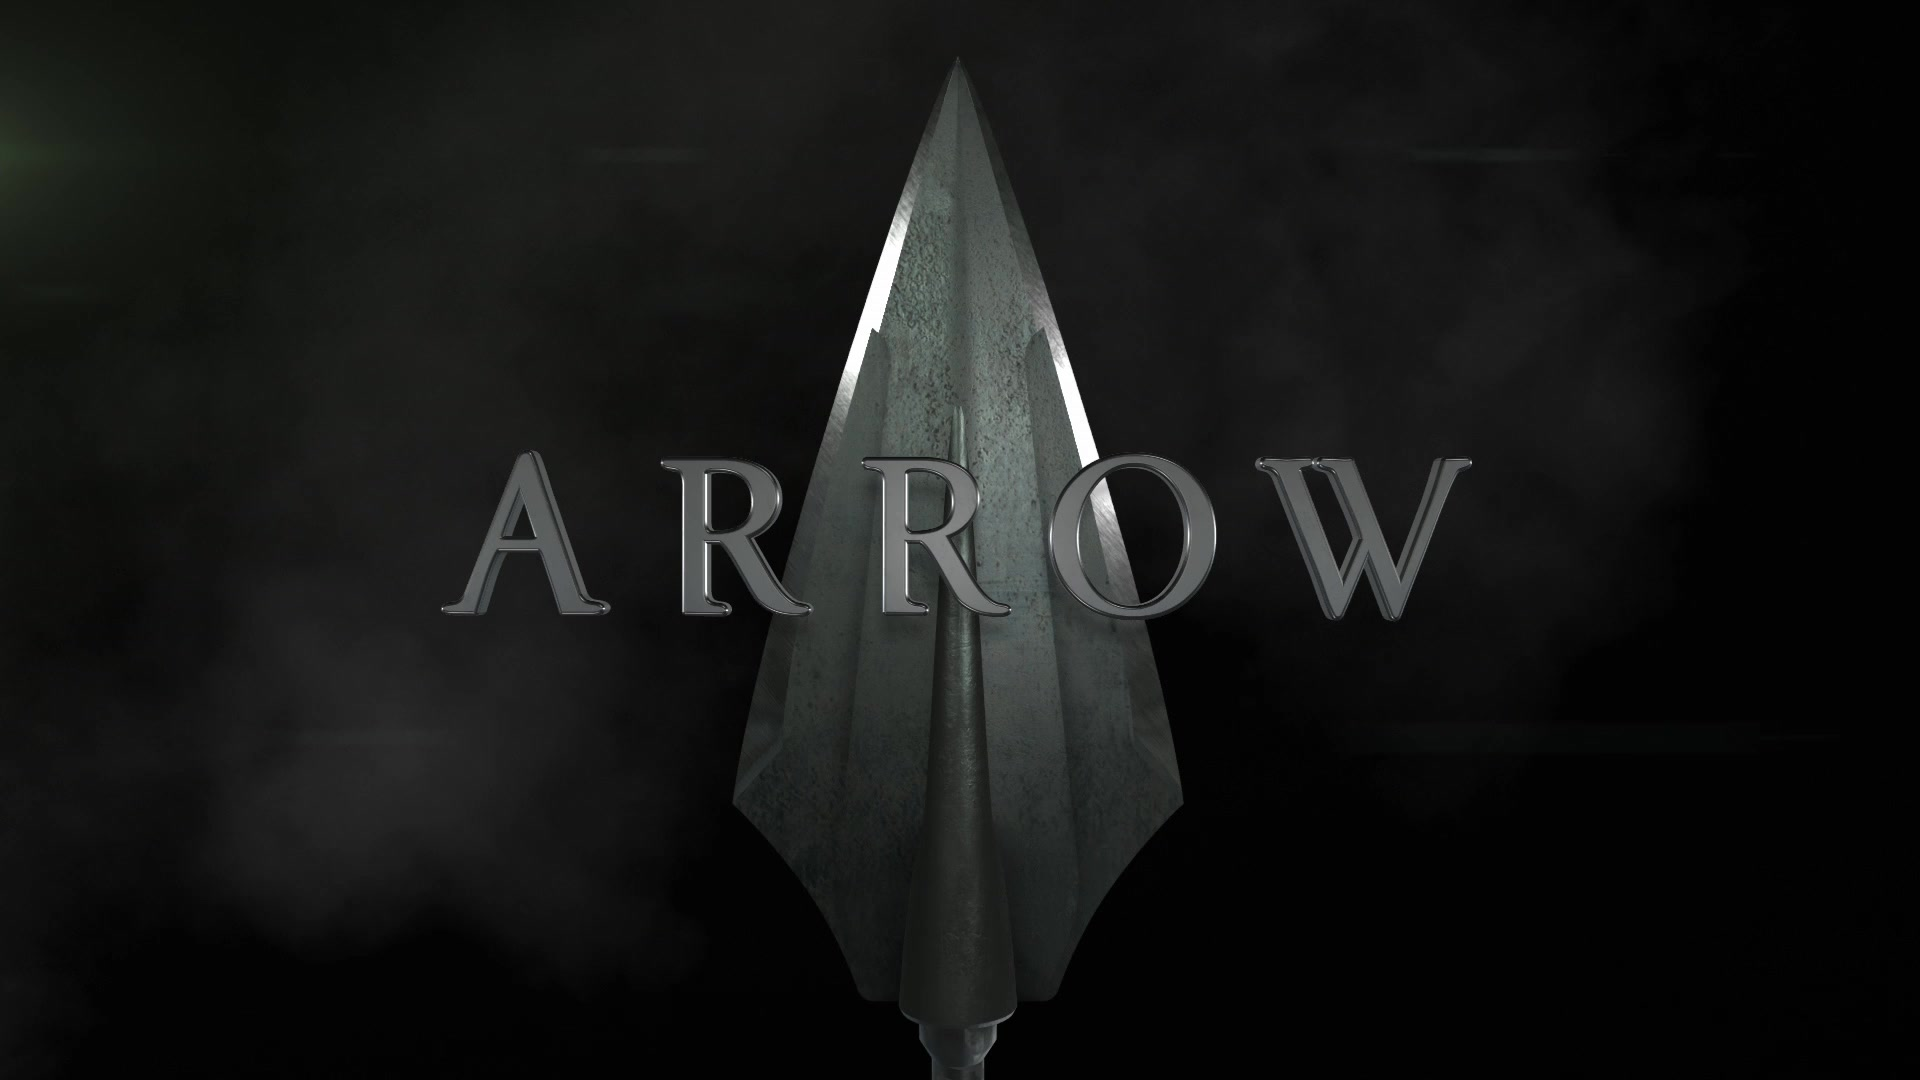 Arrow (TV Series) Episode: Emerald Archer